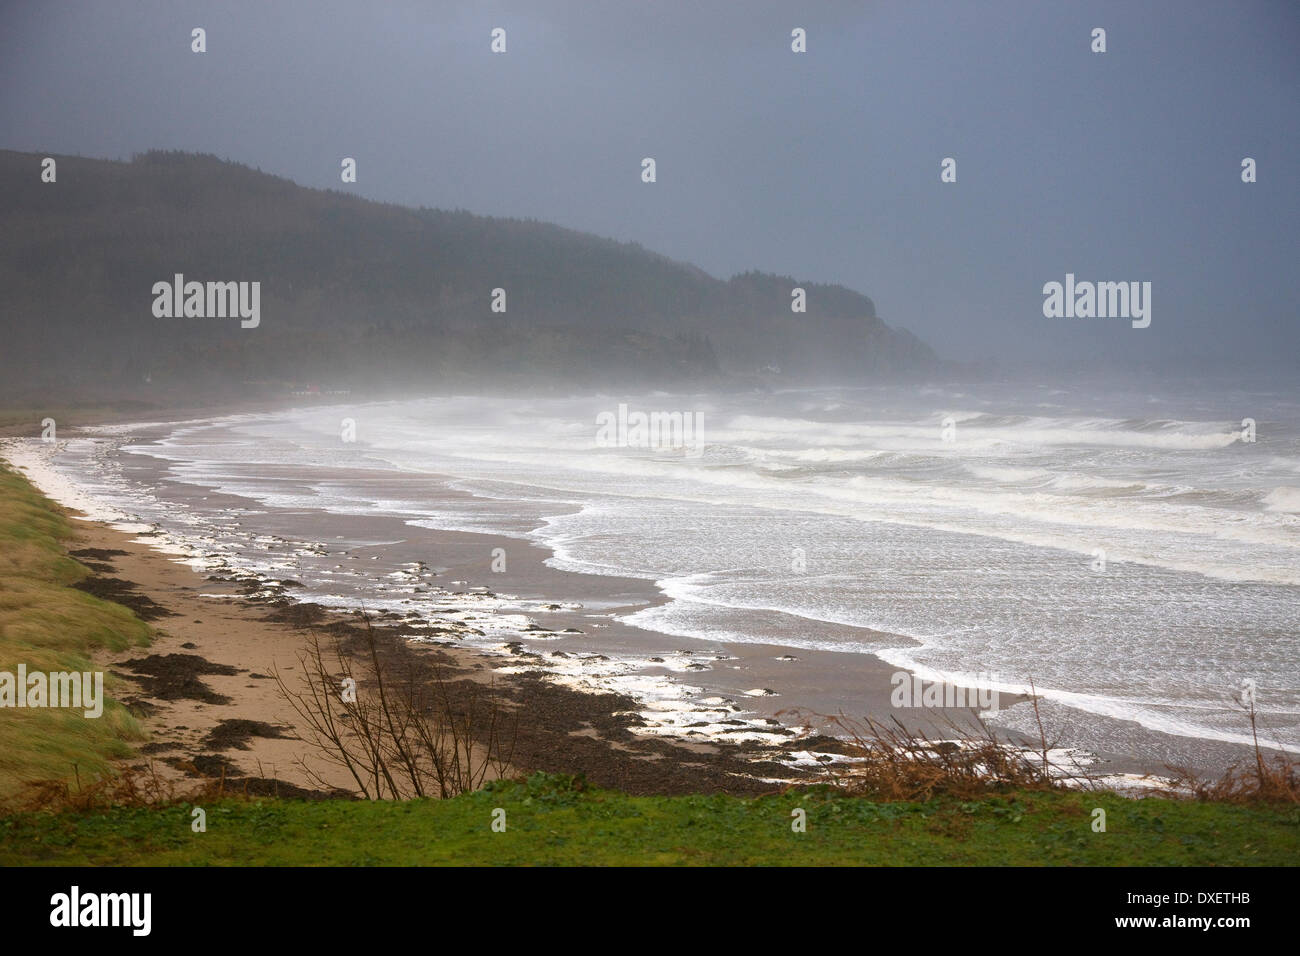 Storm force winds hit Ardmucknish Bay, Tralee, Argyll - Stock Image